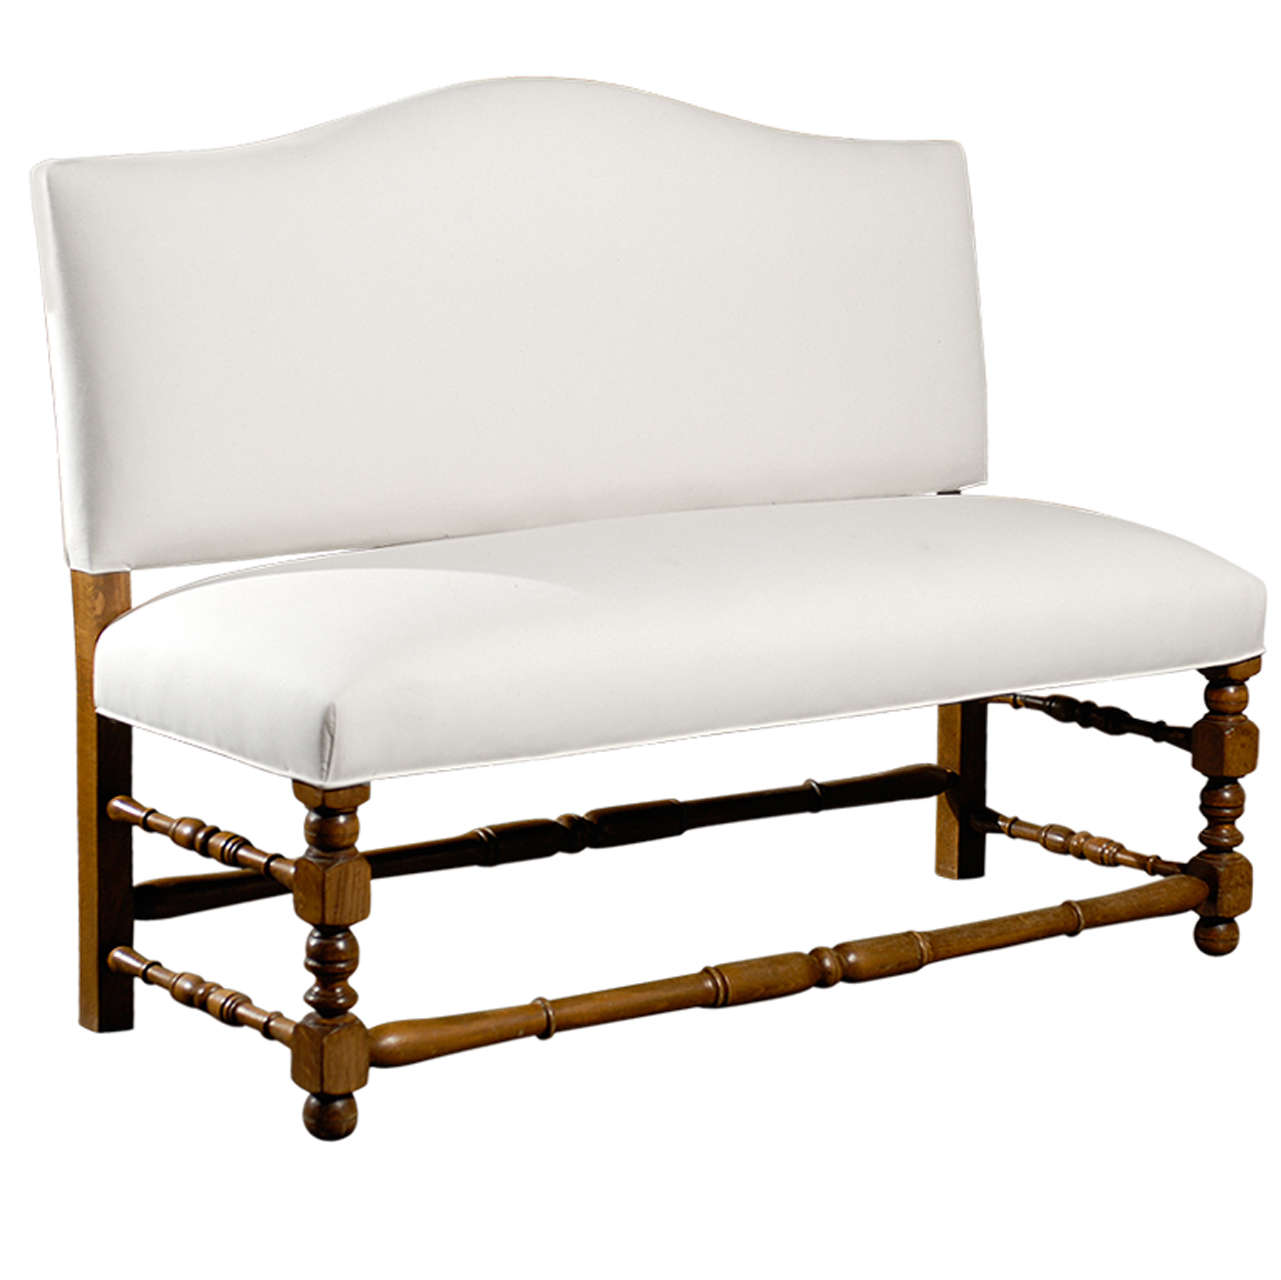 french upholstered bench with back at stdibs - french upholstered bench with back